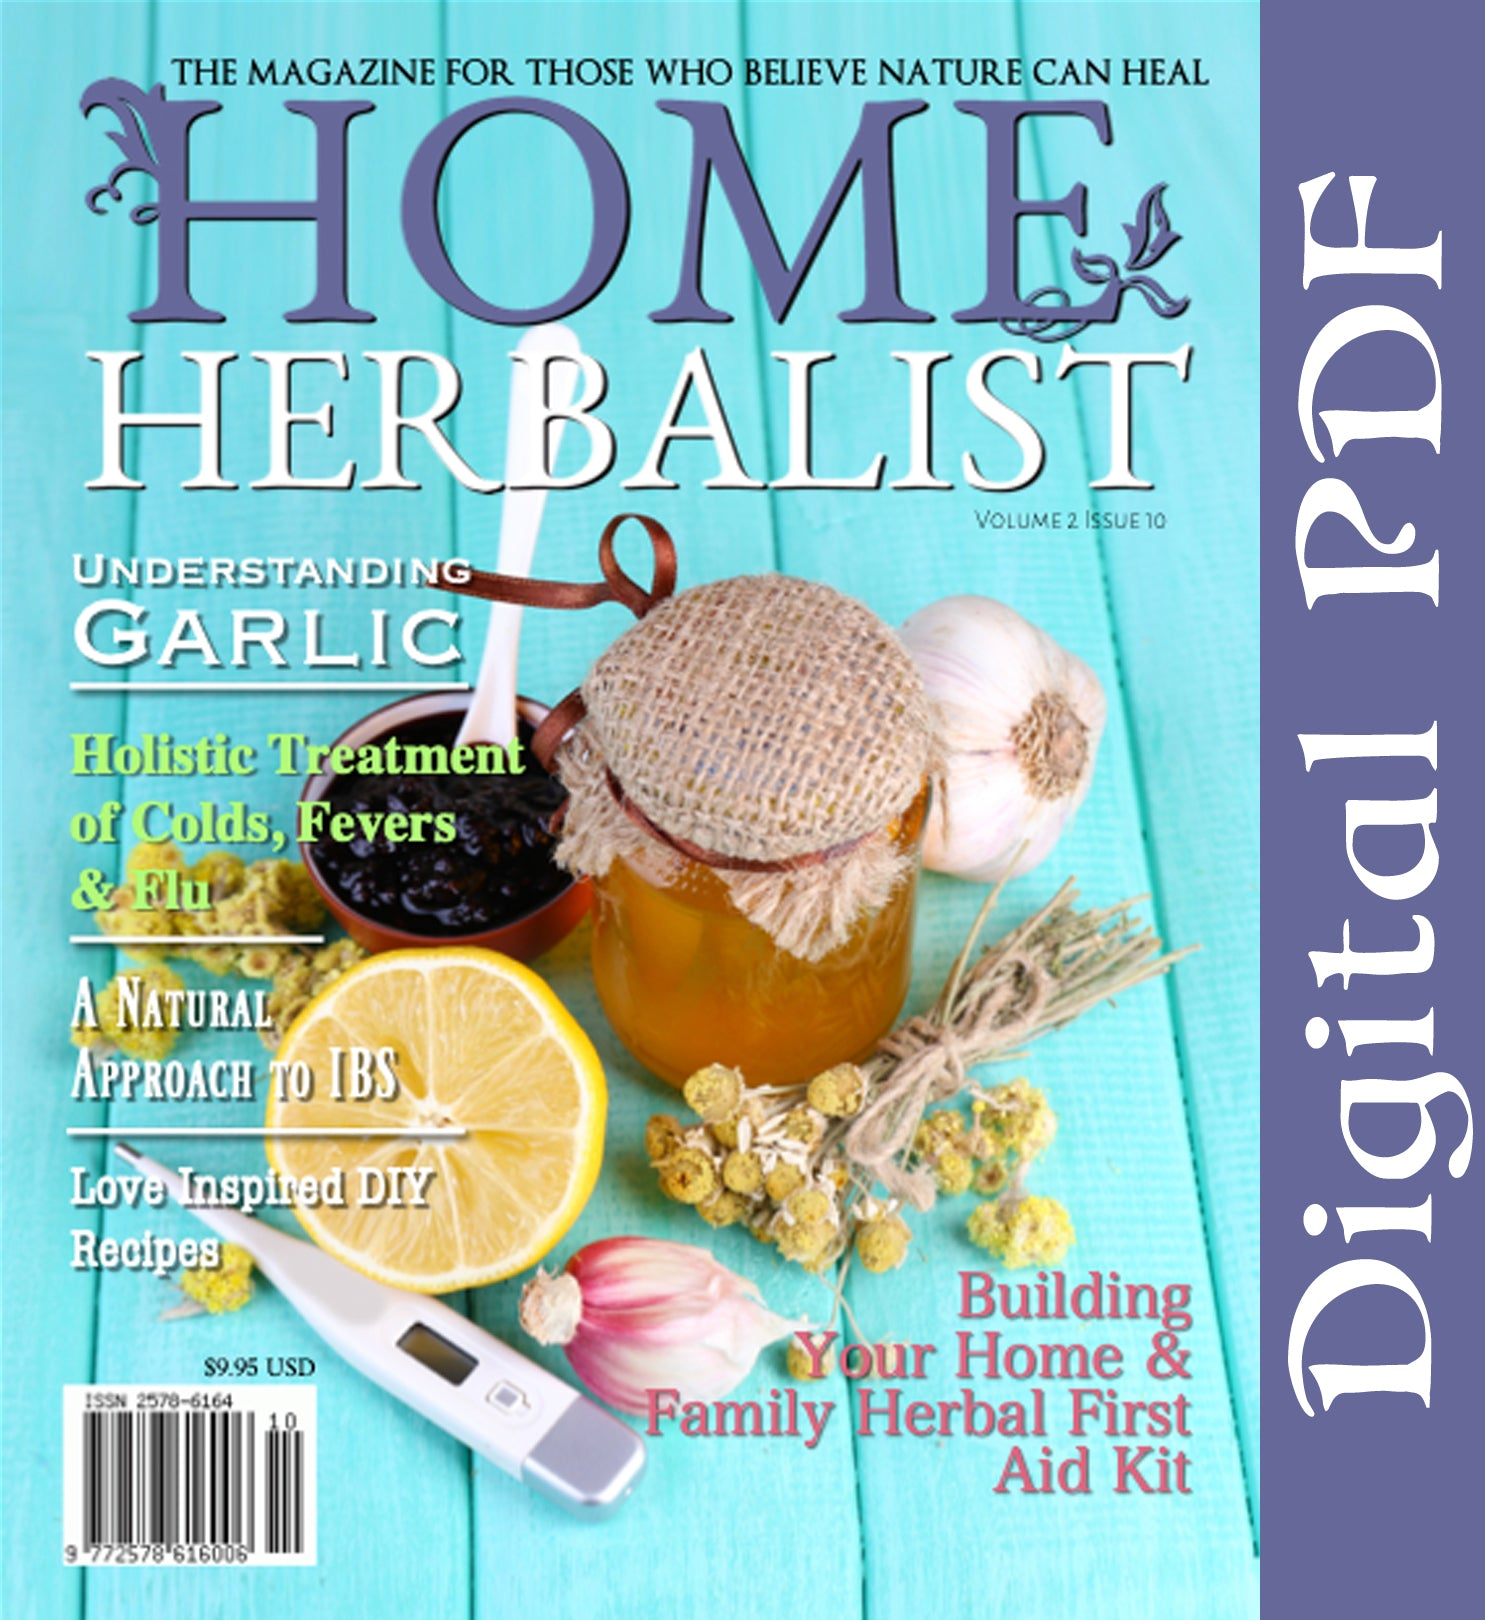 Issue #010 Building Your Home & Family Herbal First Aid Kit